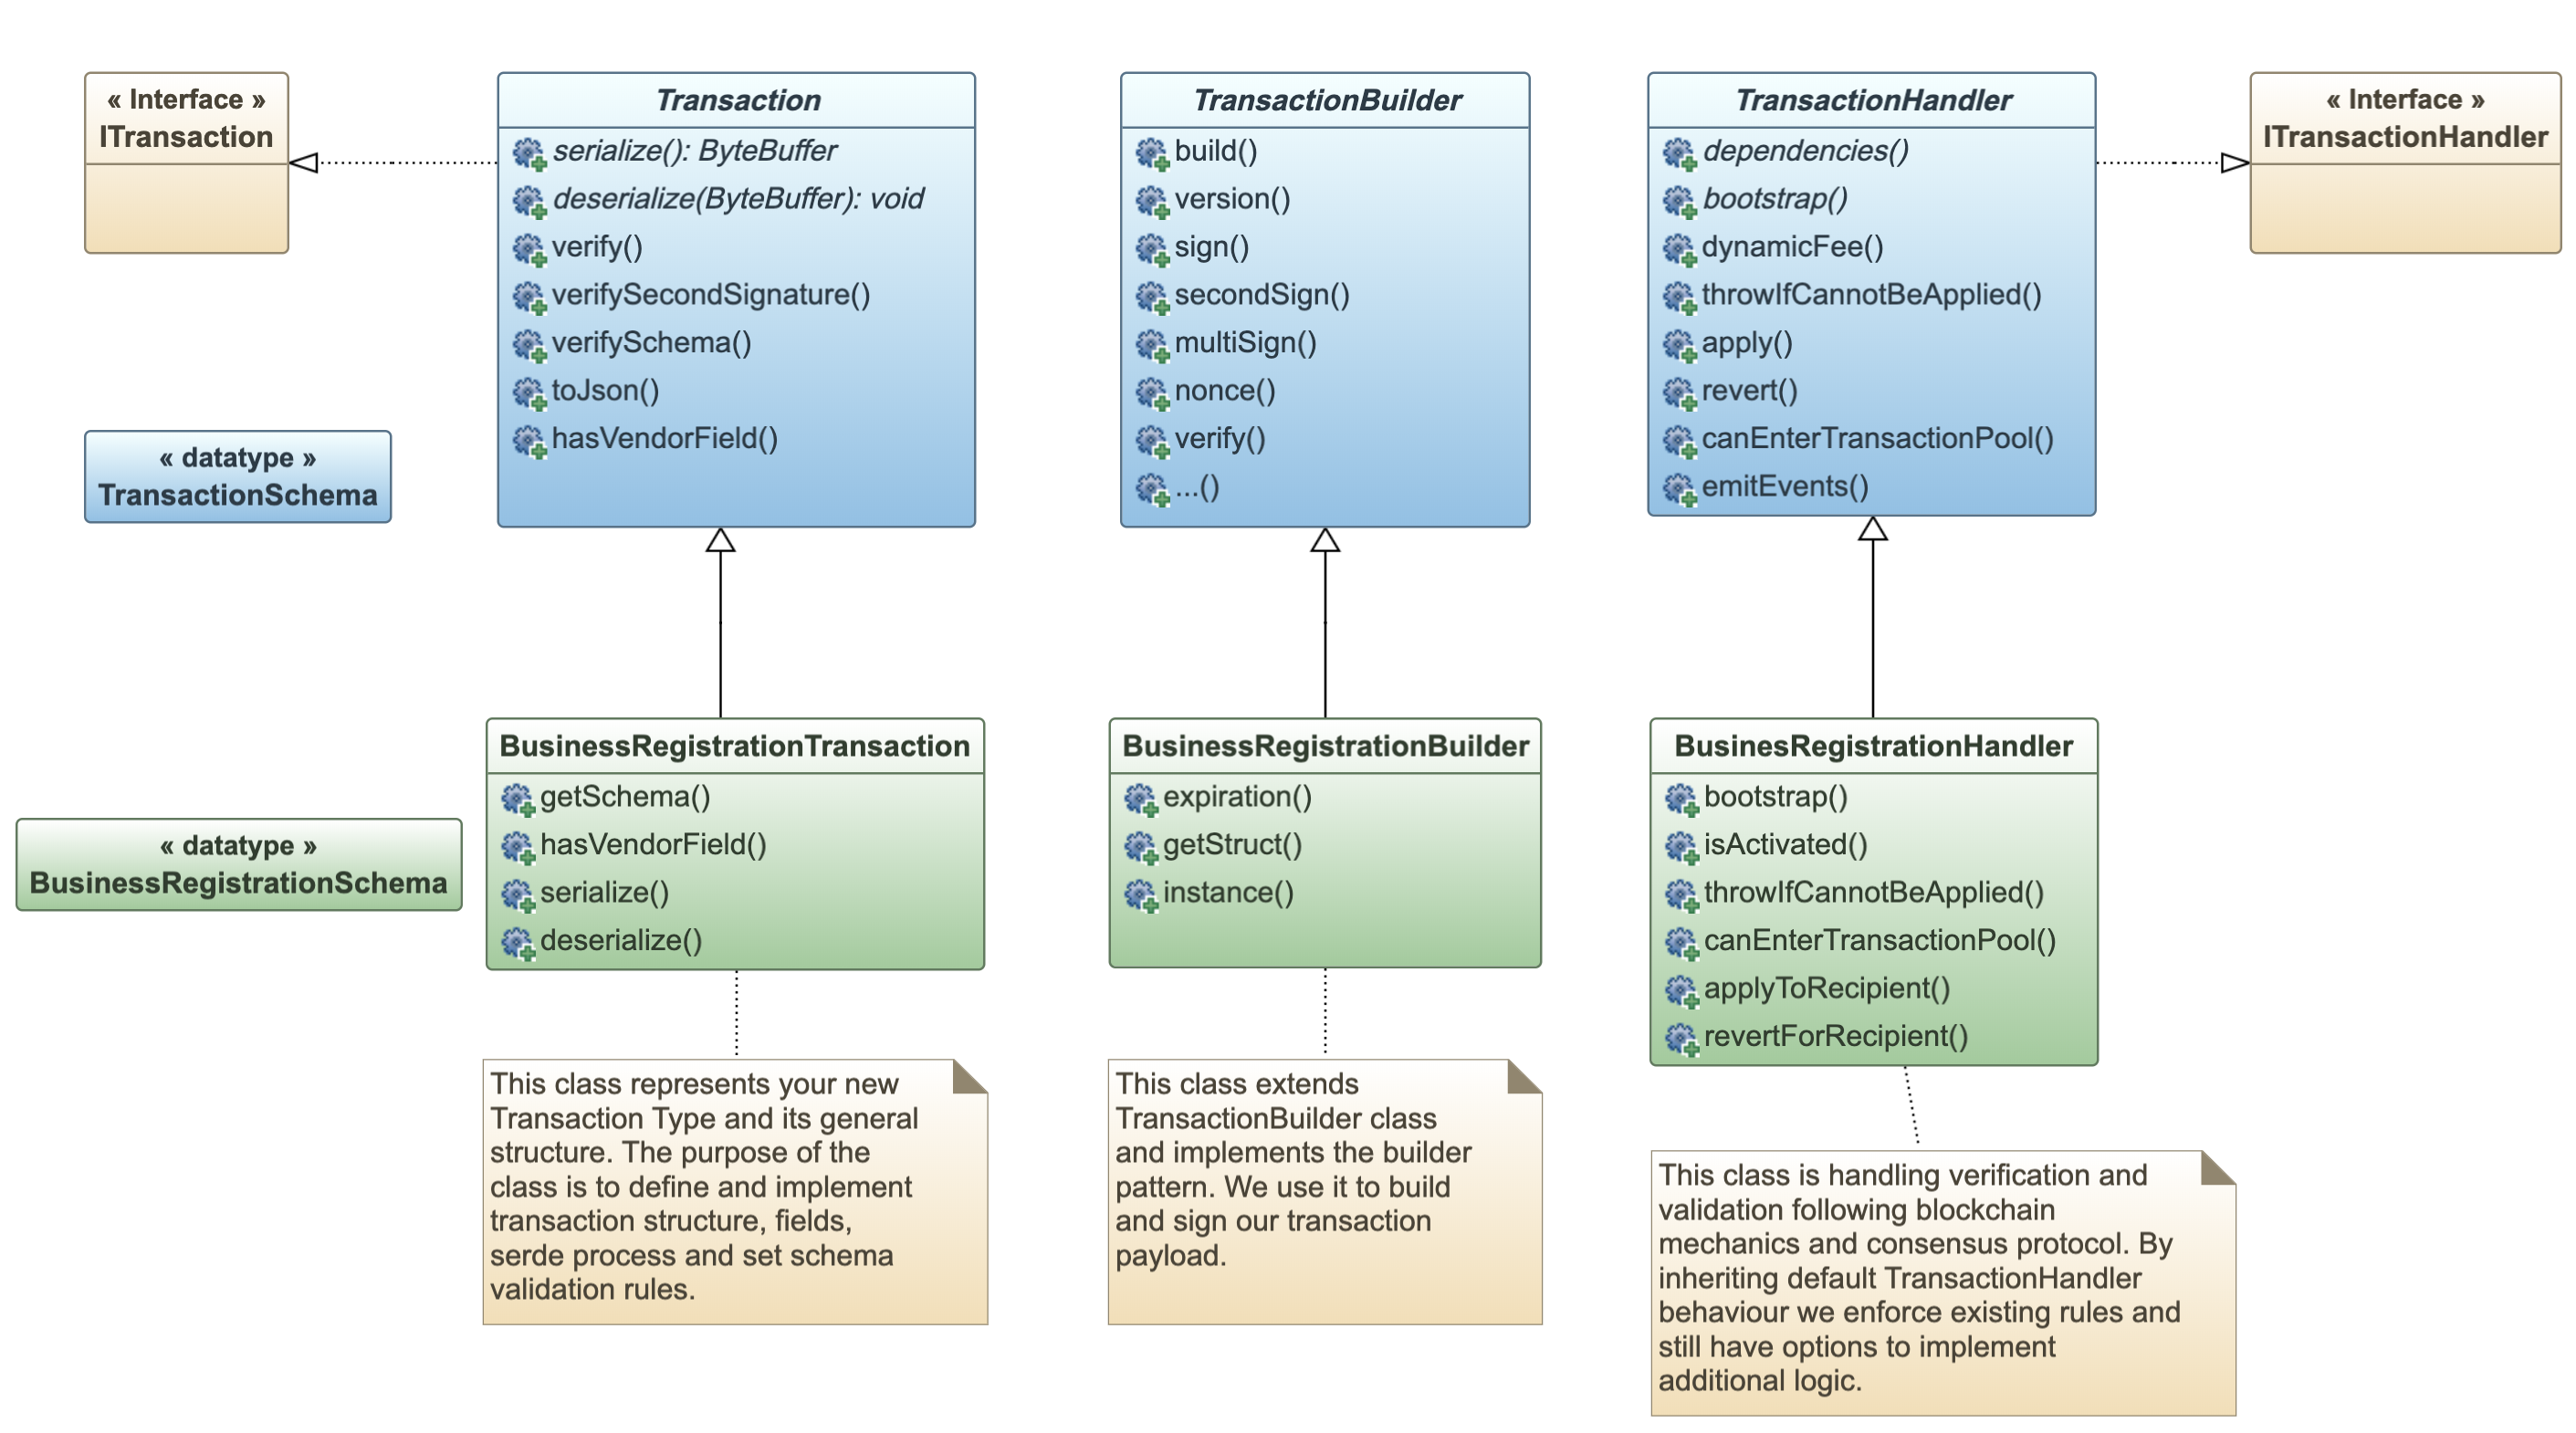 Class Diagram (partial) showing important parts of Core GTI. We need to implement the green-colored classes.